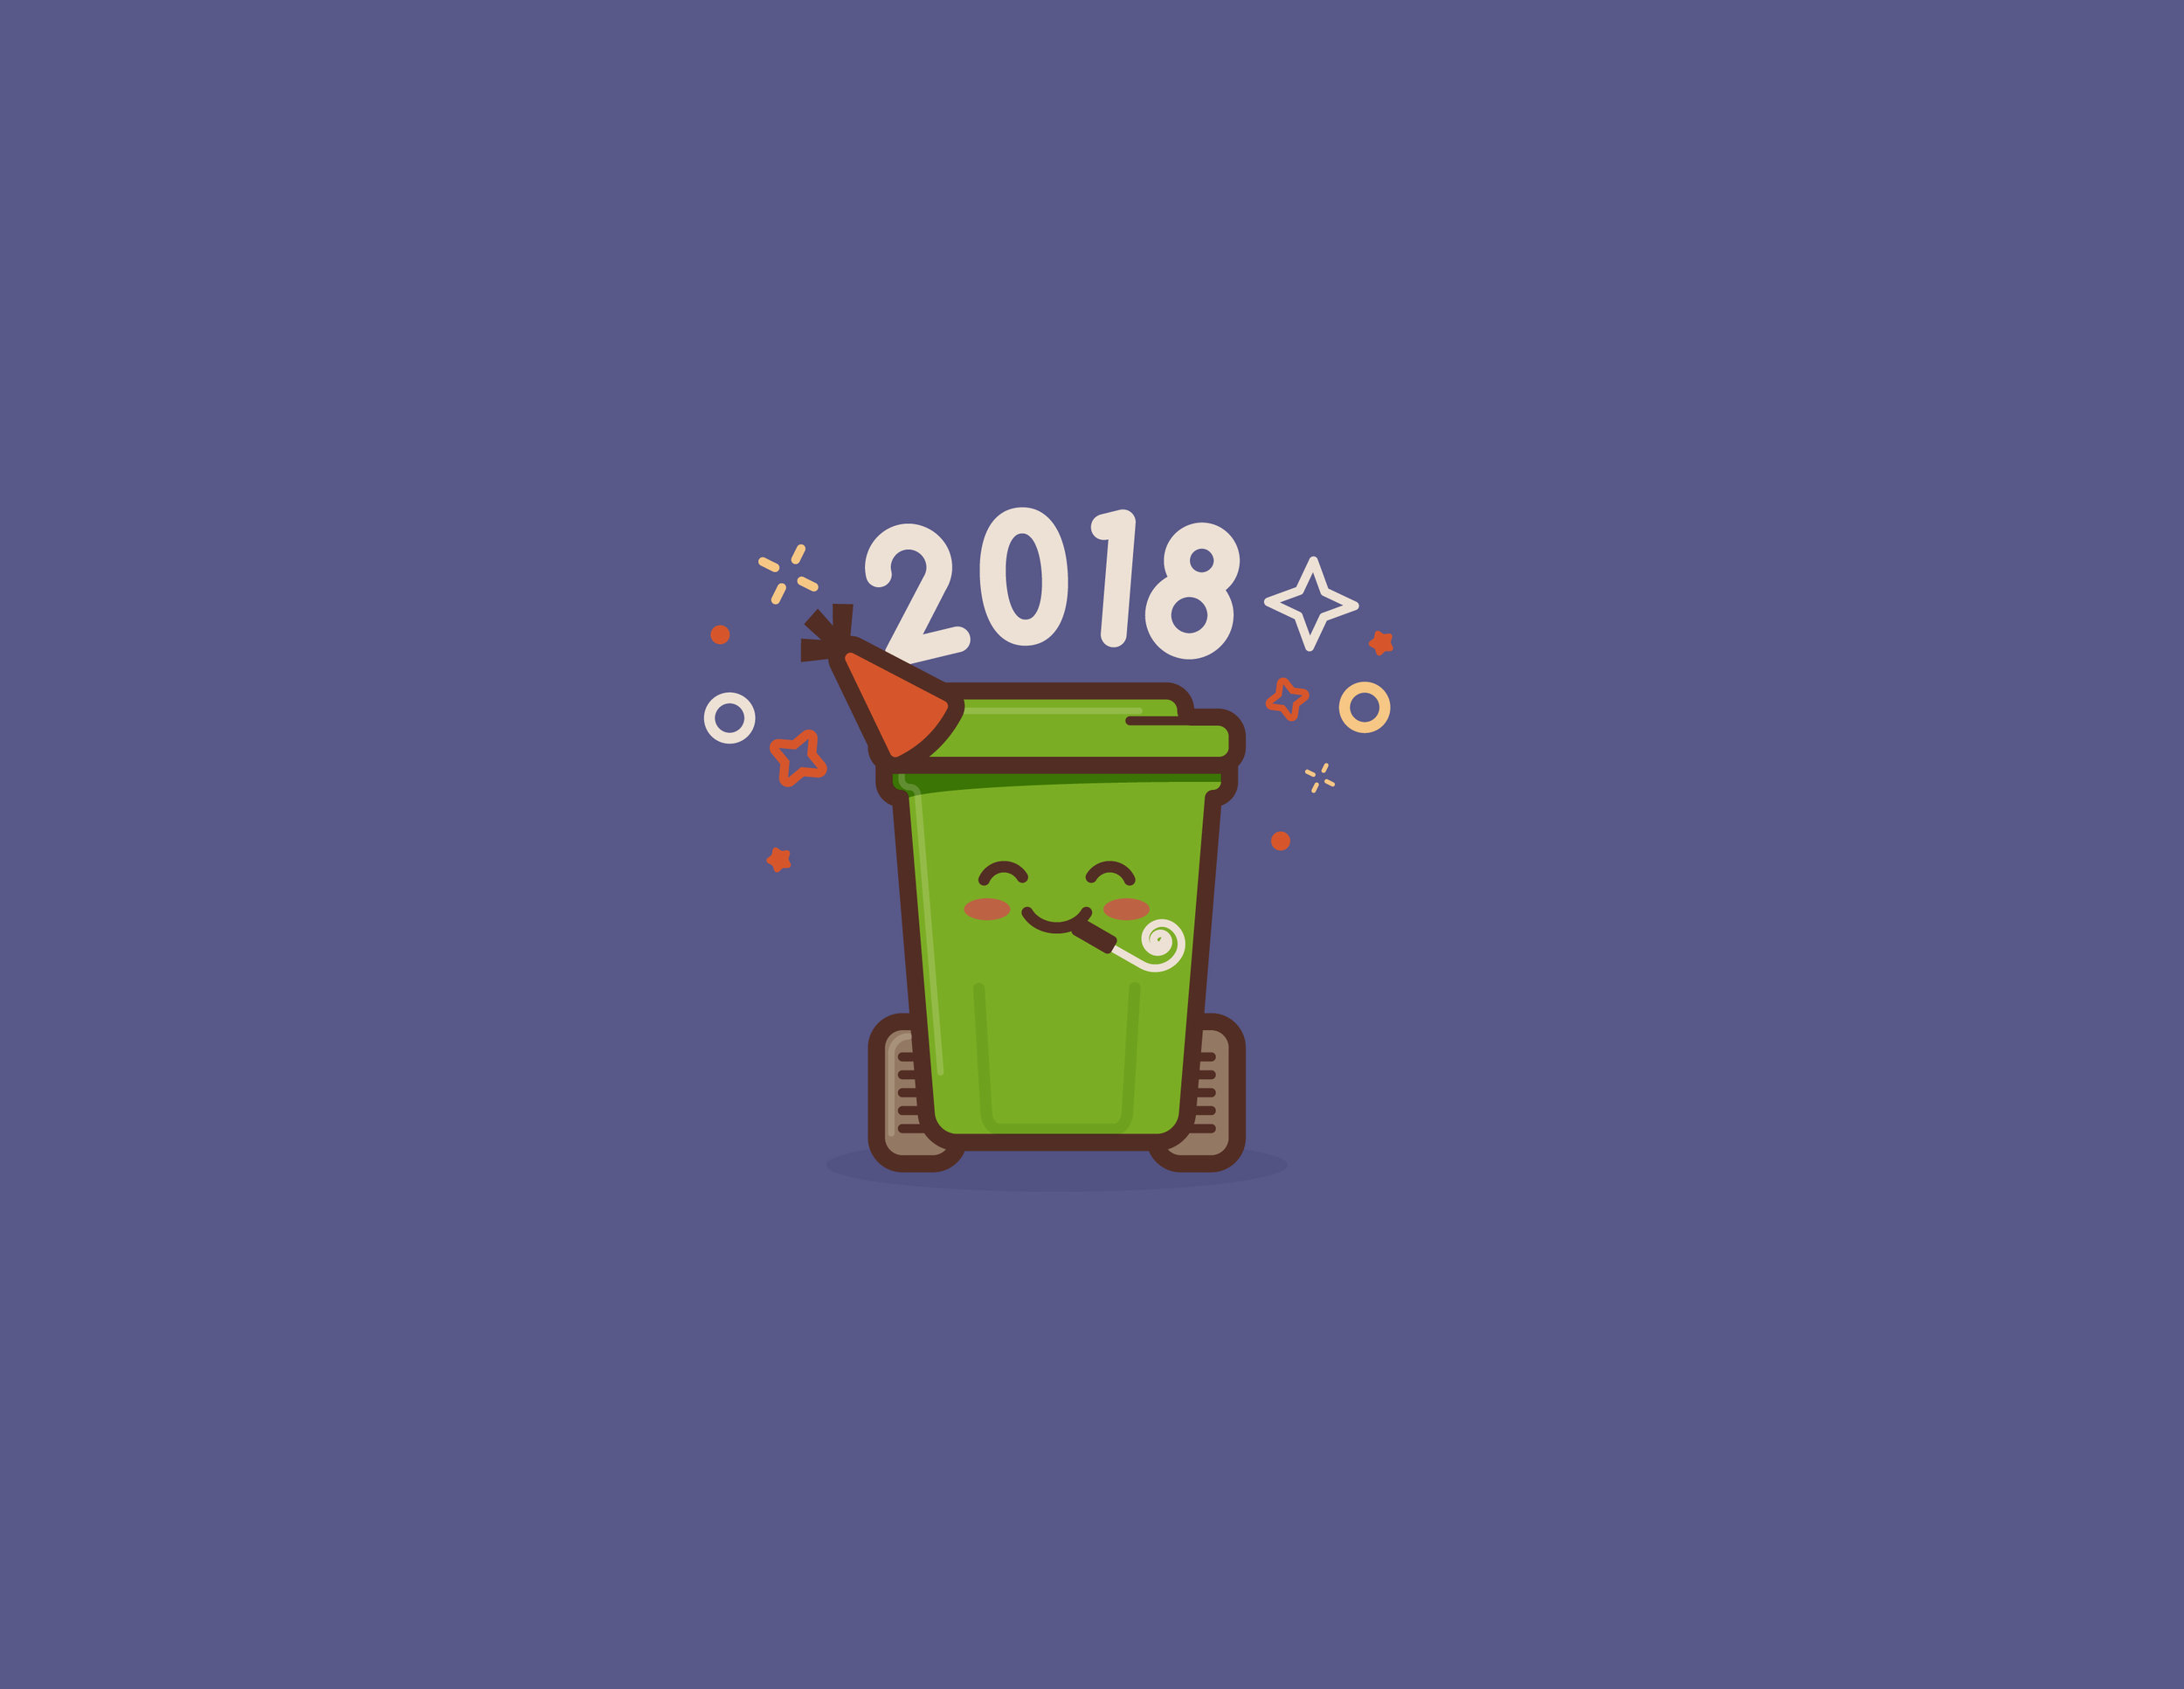 MESCHIERI_ADDY_2018_SCRAPPY_82_ILLUSTRATION_newyears.jpg